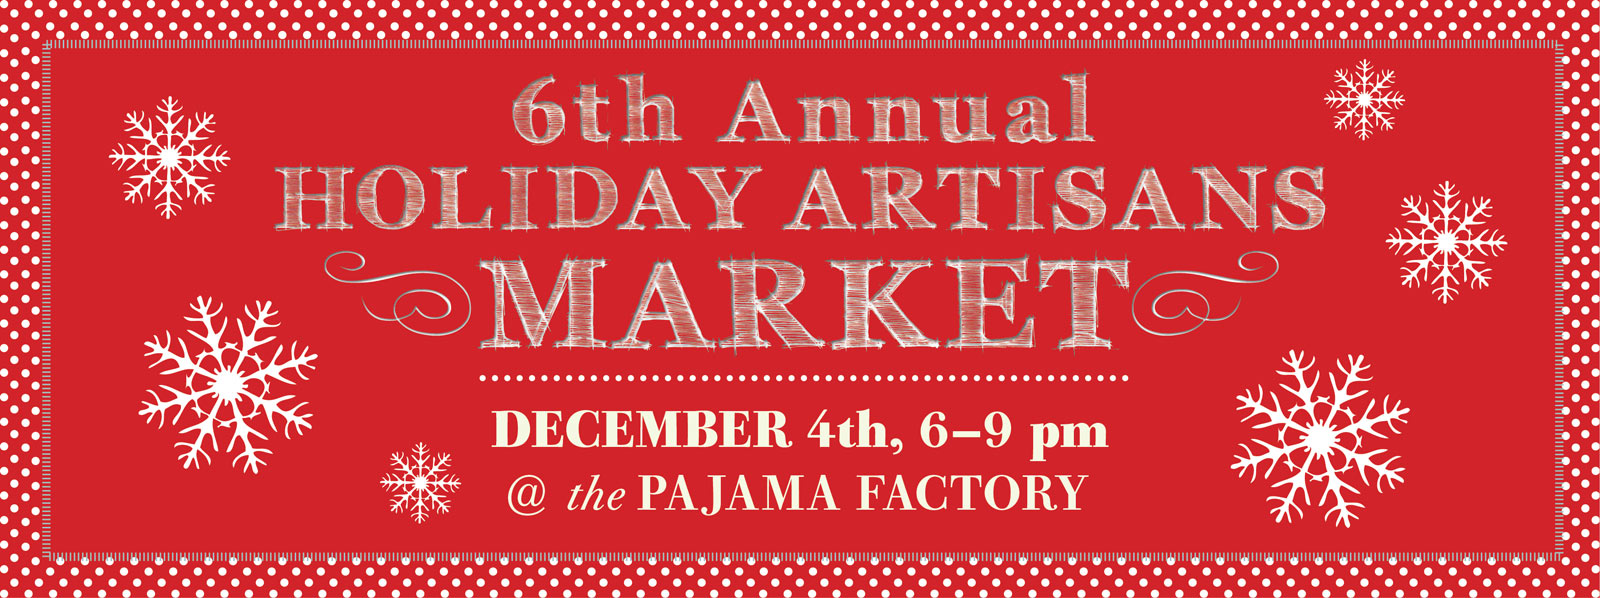 6th Annual Holiday Artisans Market